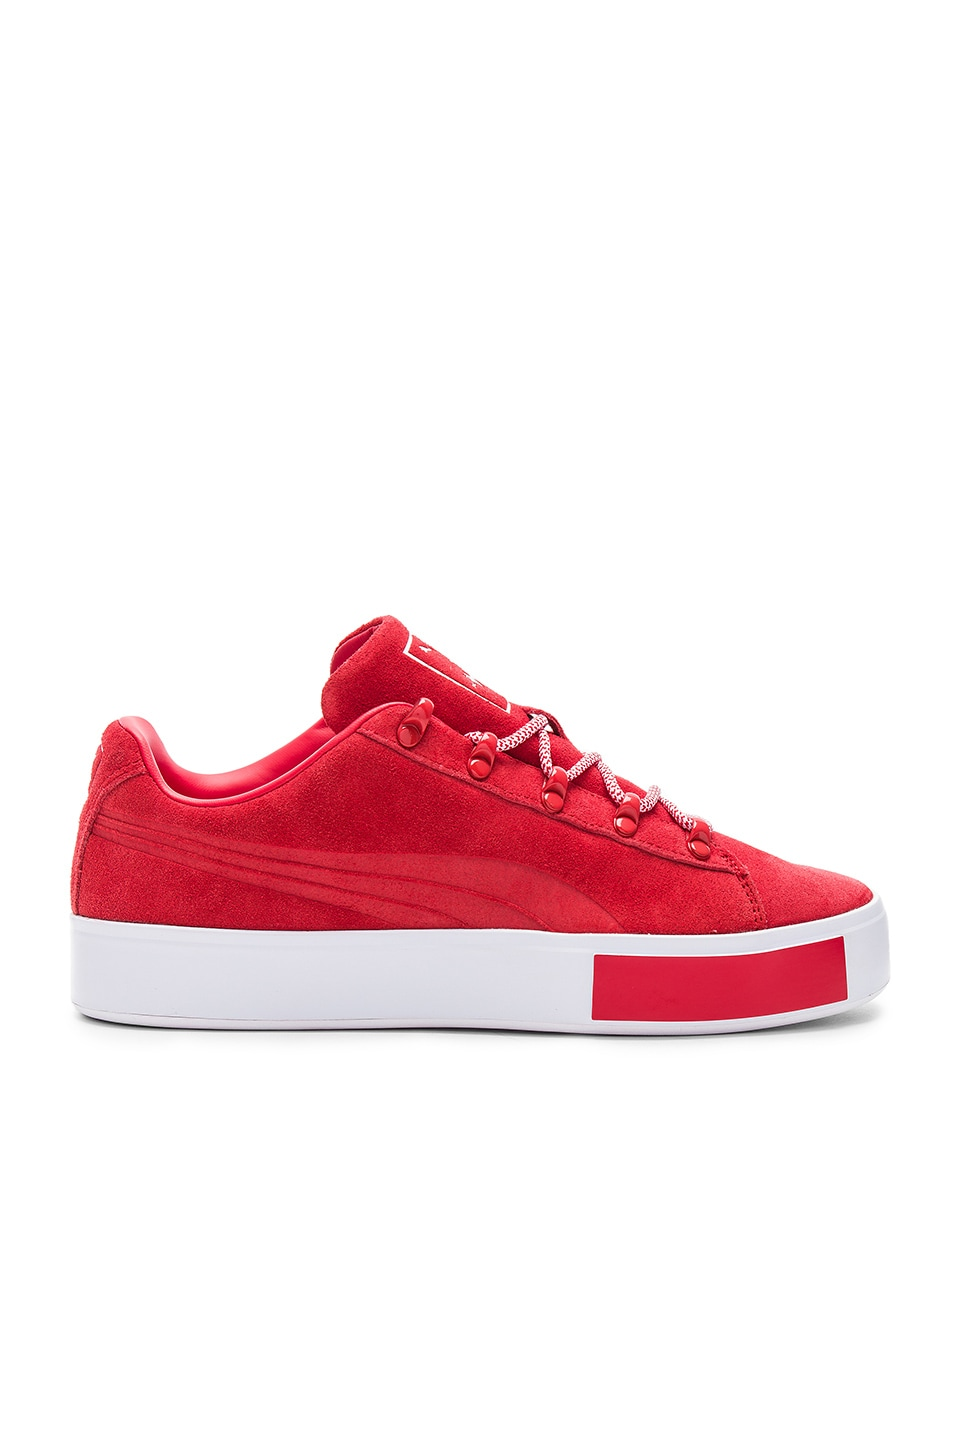 x DP Court Platform L by Puma Select